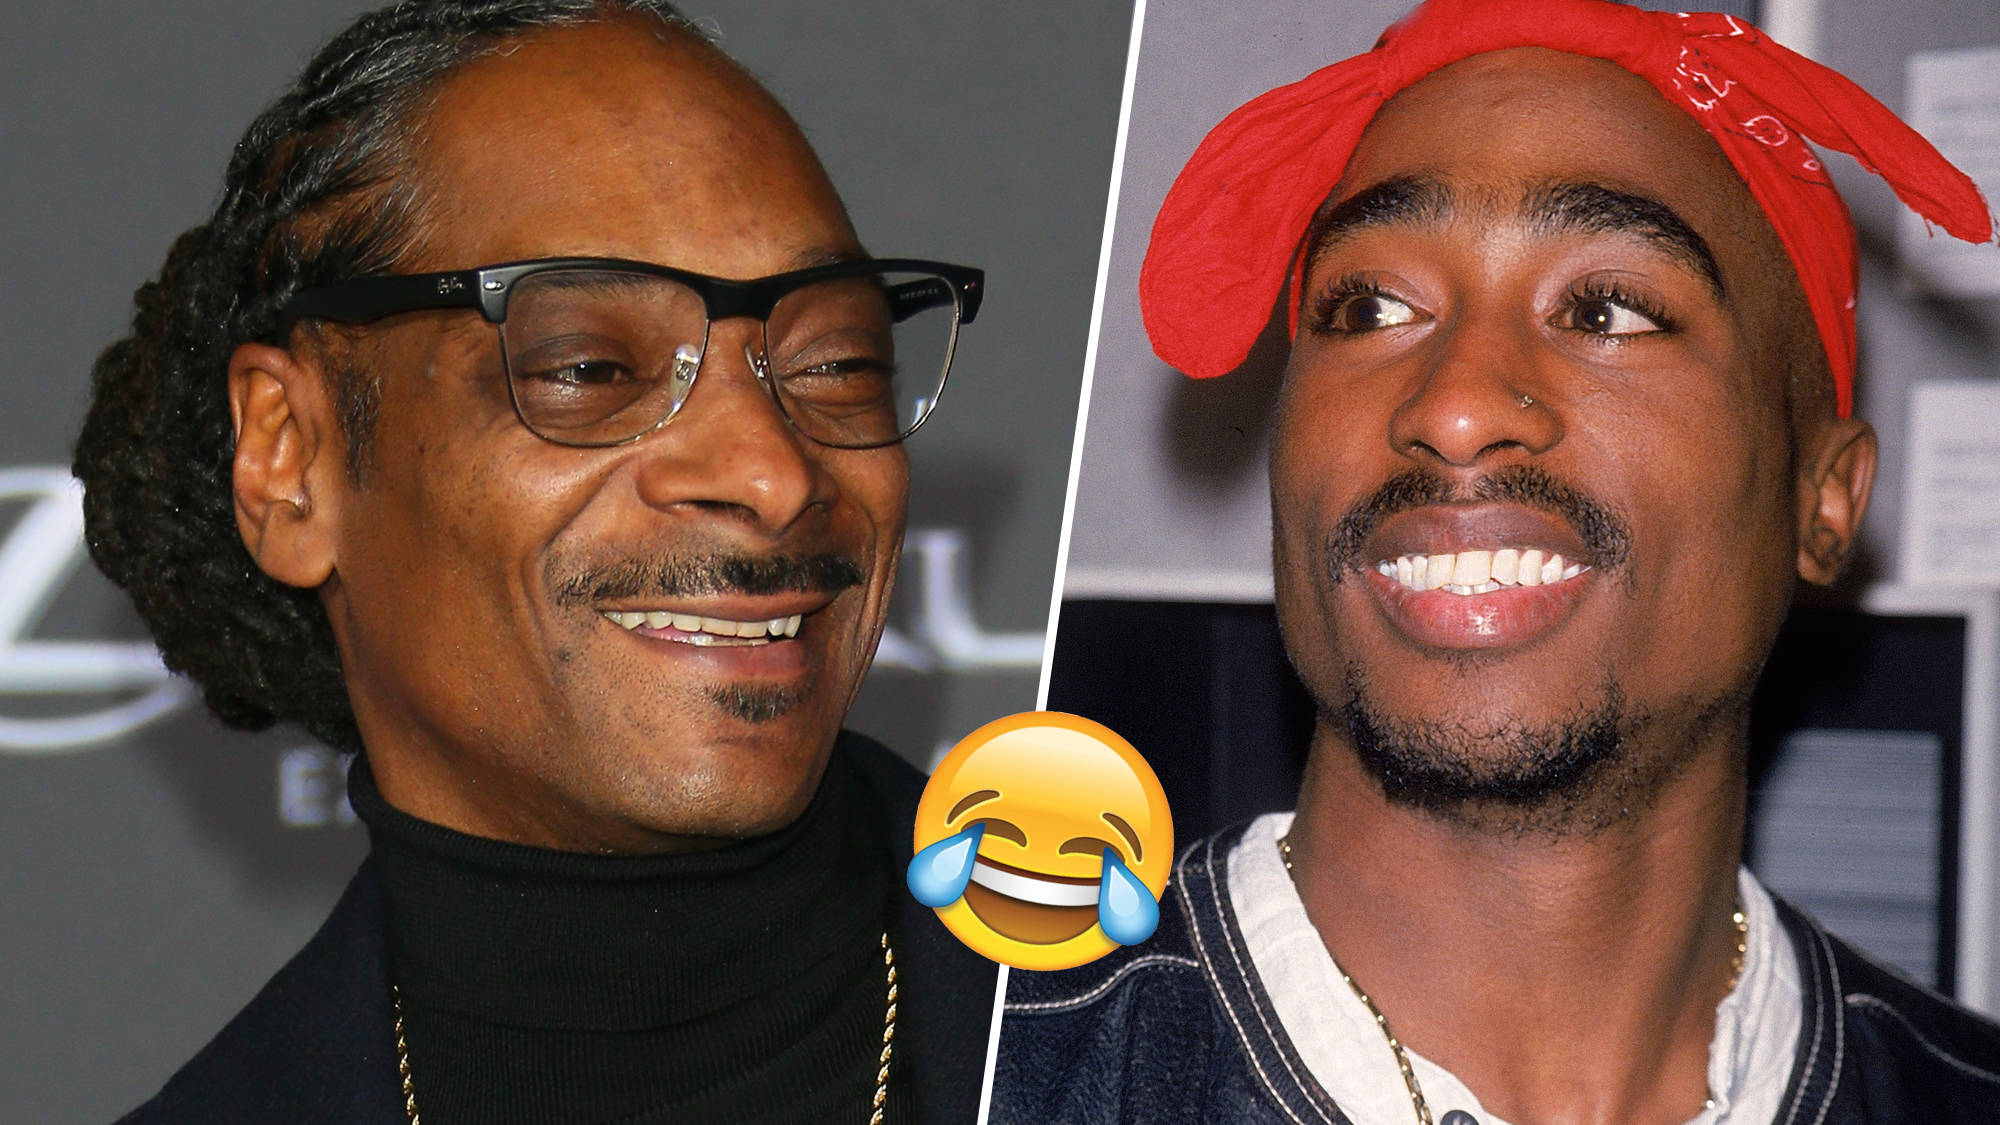 Snoop Dogg Trolls Viral Tupac Look-A-Like With Hilarious